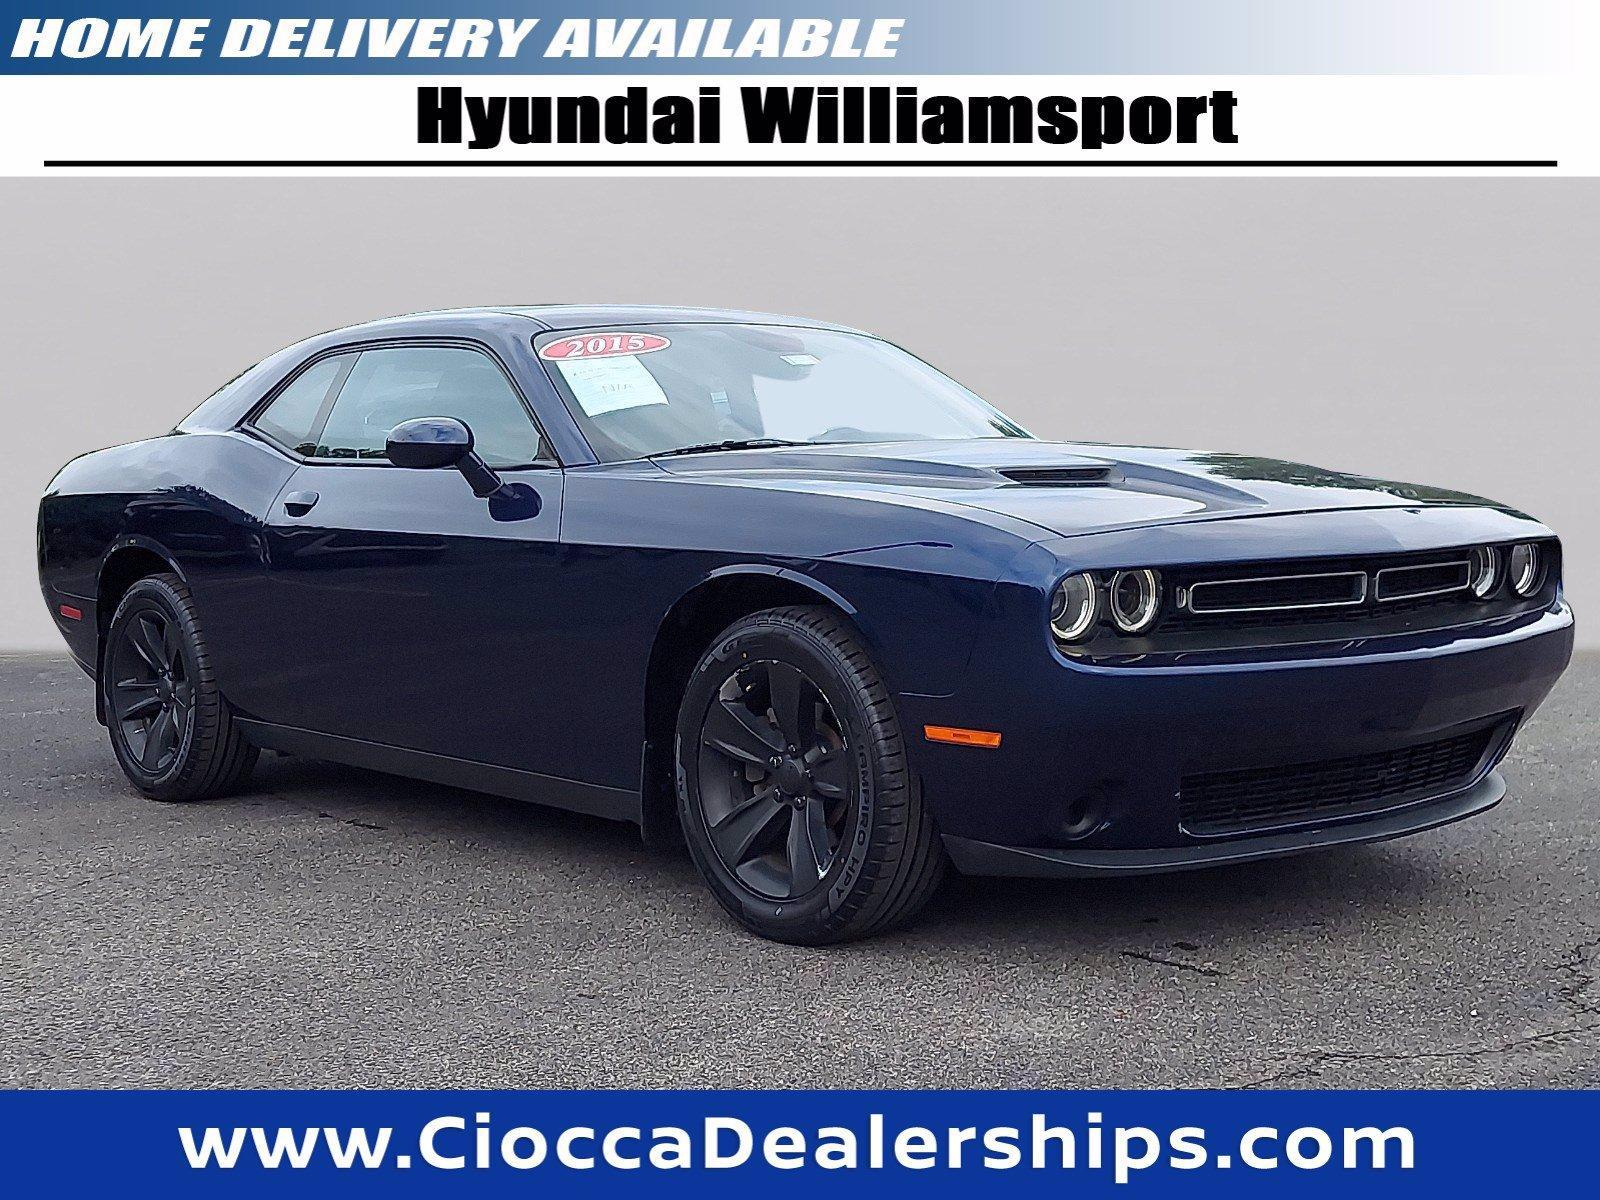 2015 Dodge Challenger Vehicle Photo in Muncy, PA 17756